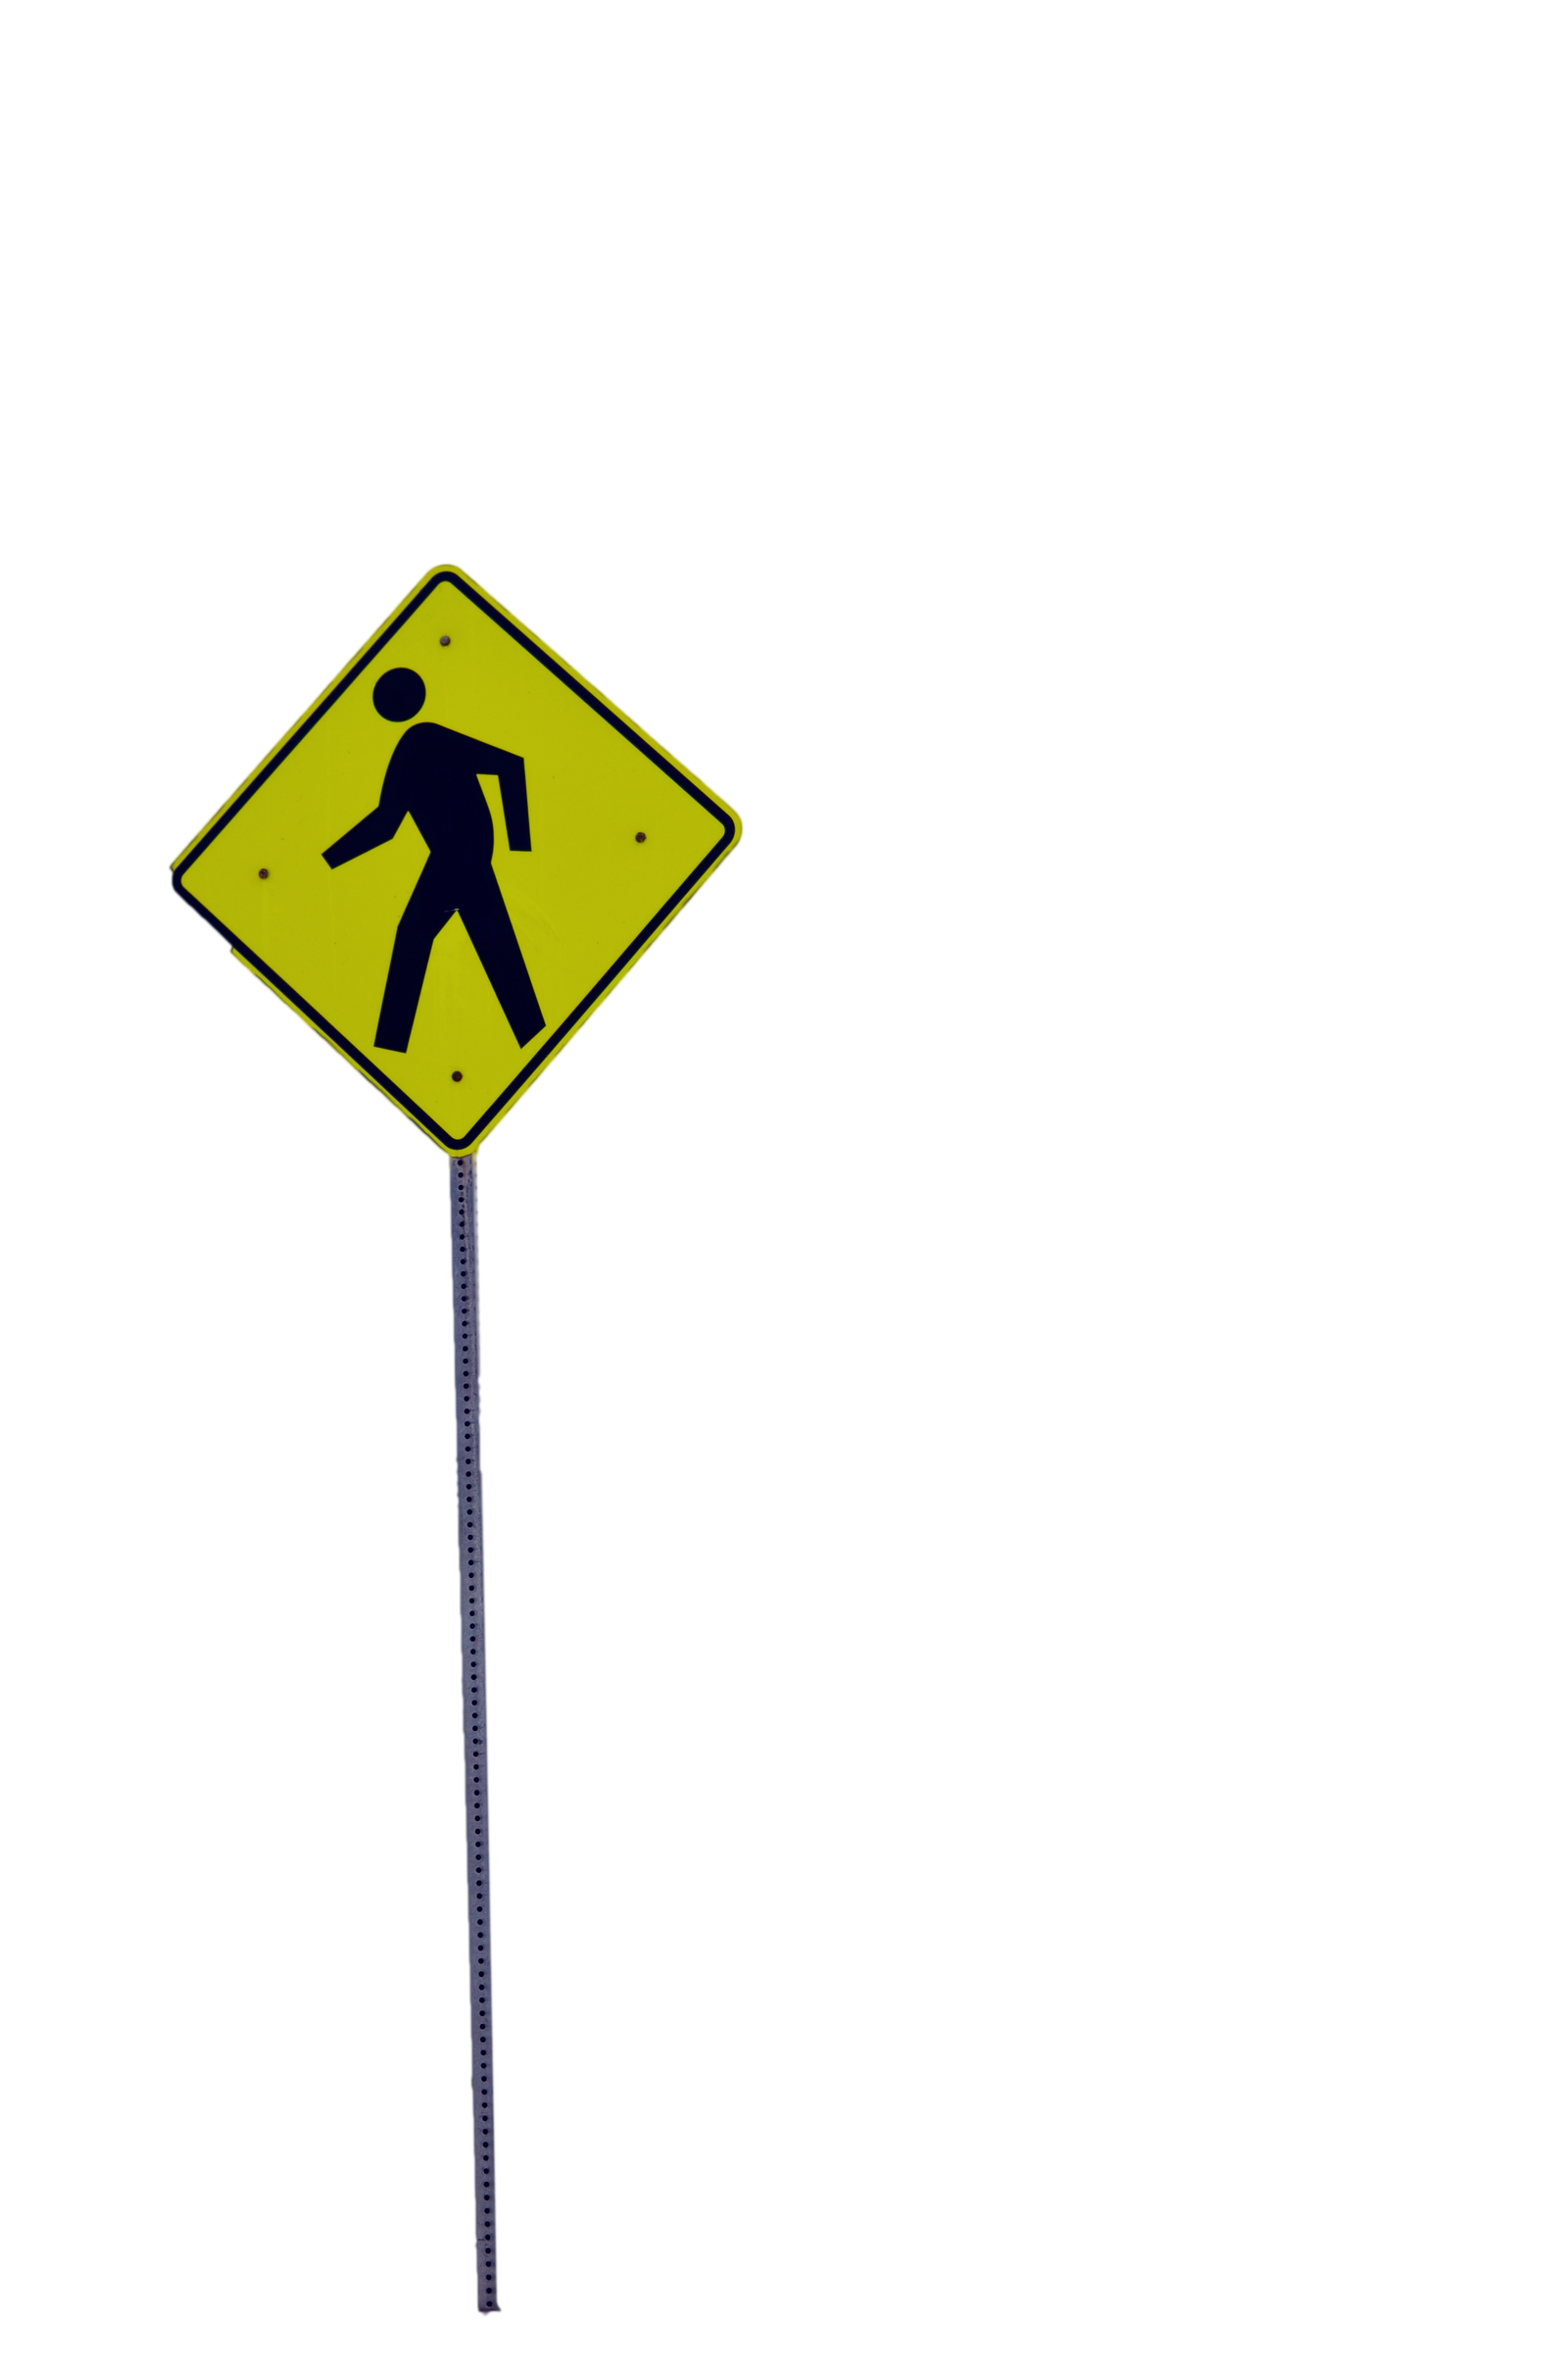 A Yellow Man Walking Sign Stock Photo PNG by annamae22